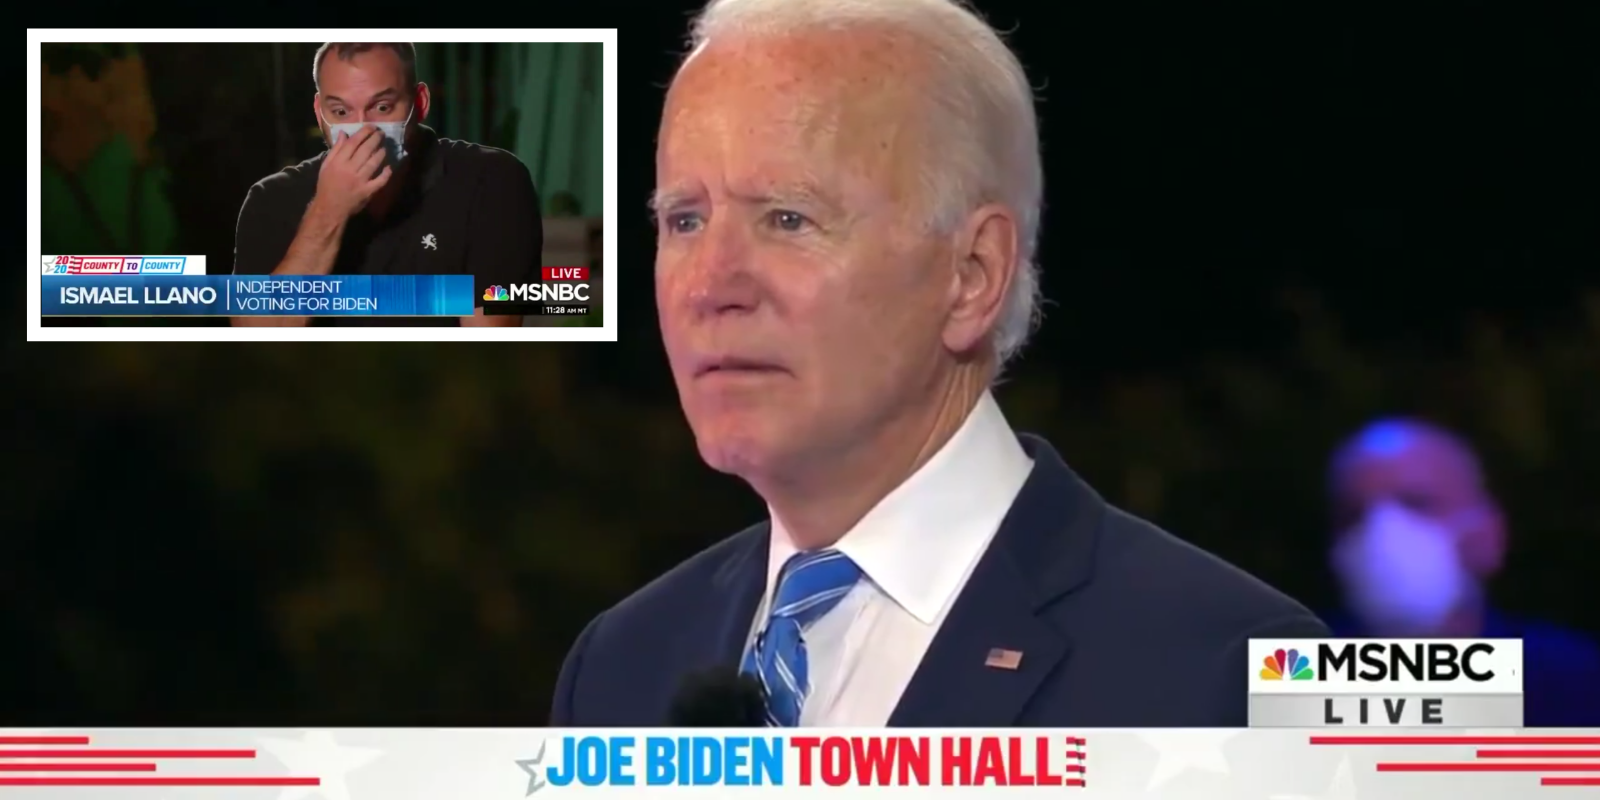 NBC caught passing off Biden voters as 'undecided' during town hall